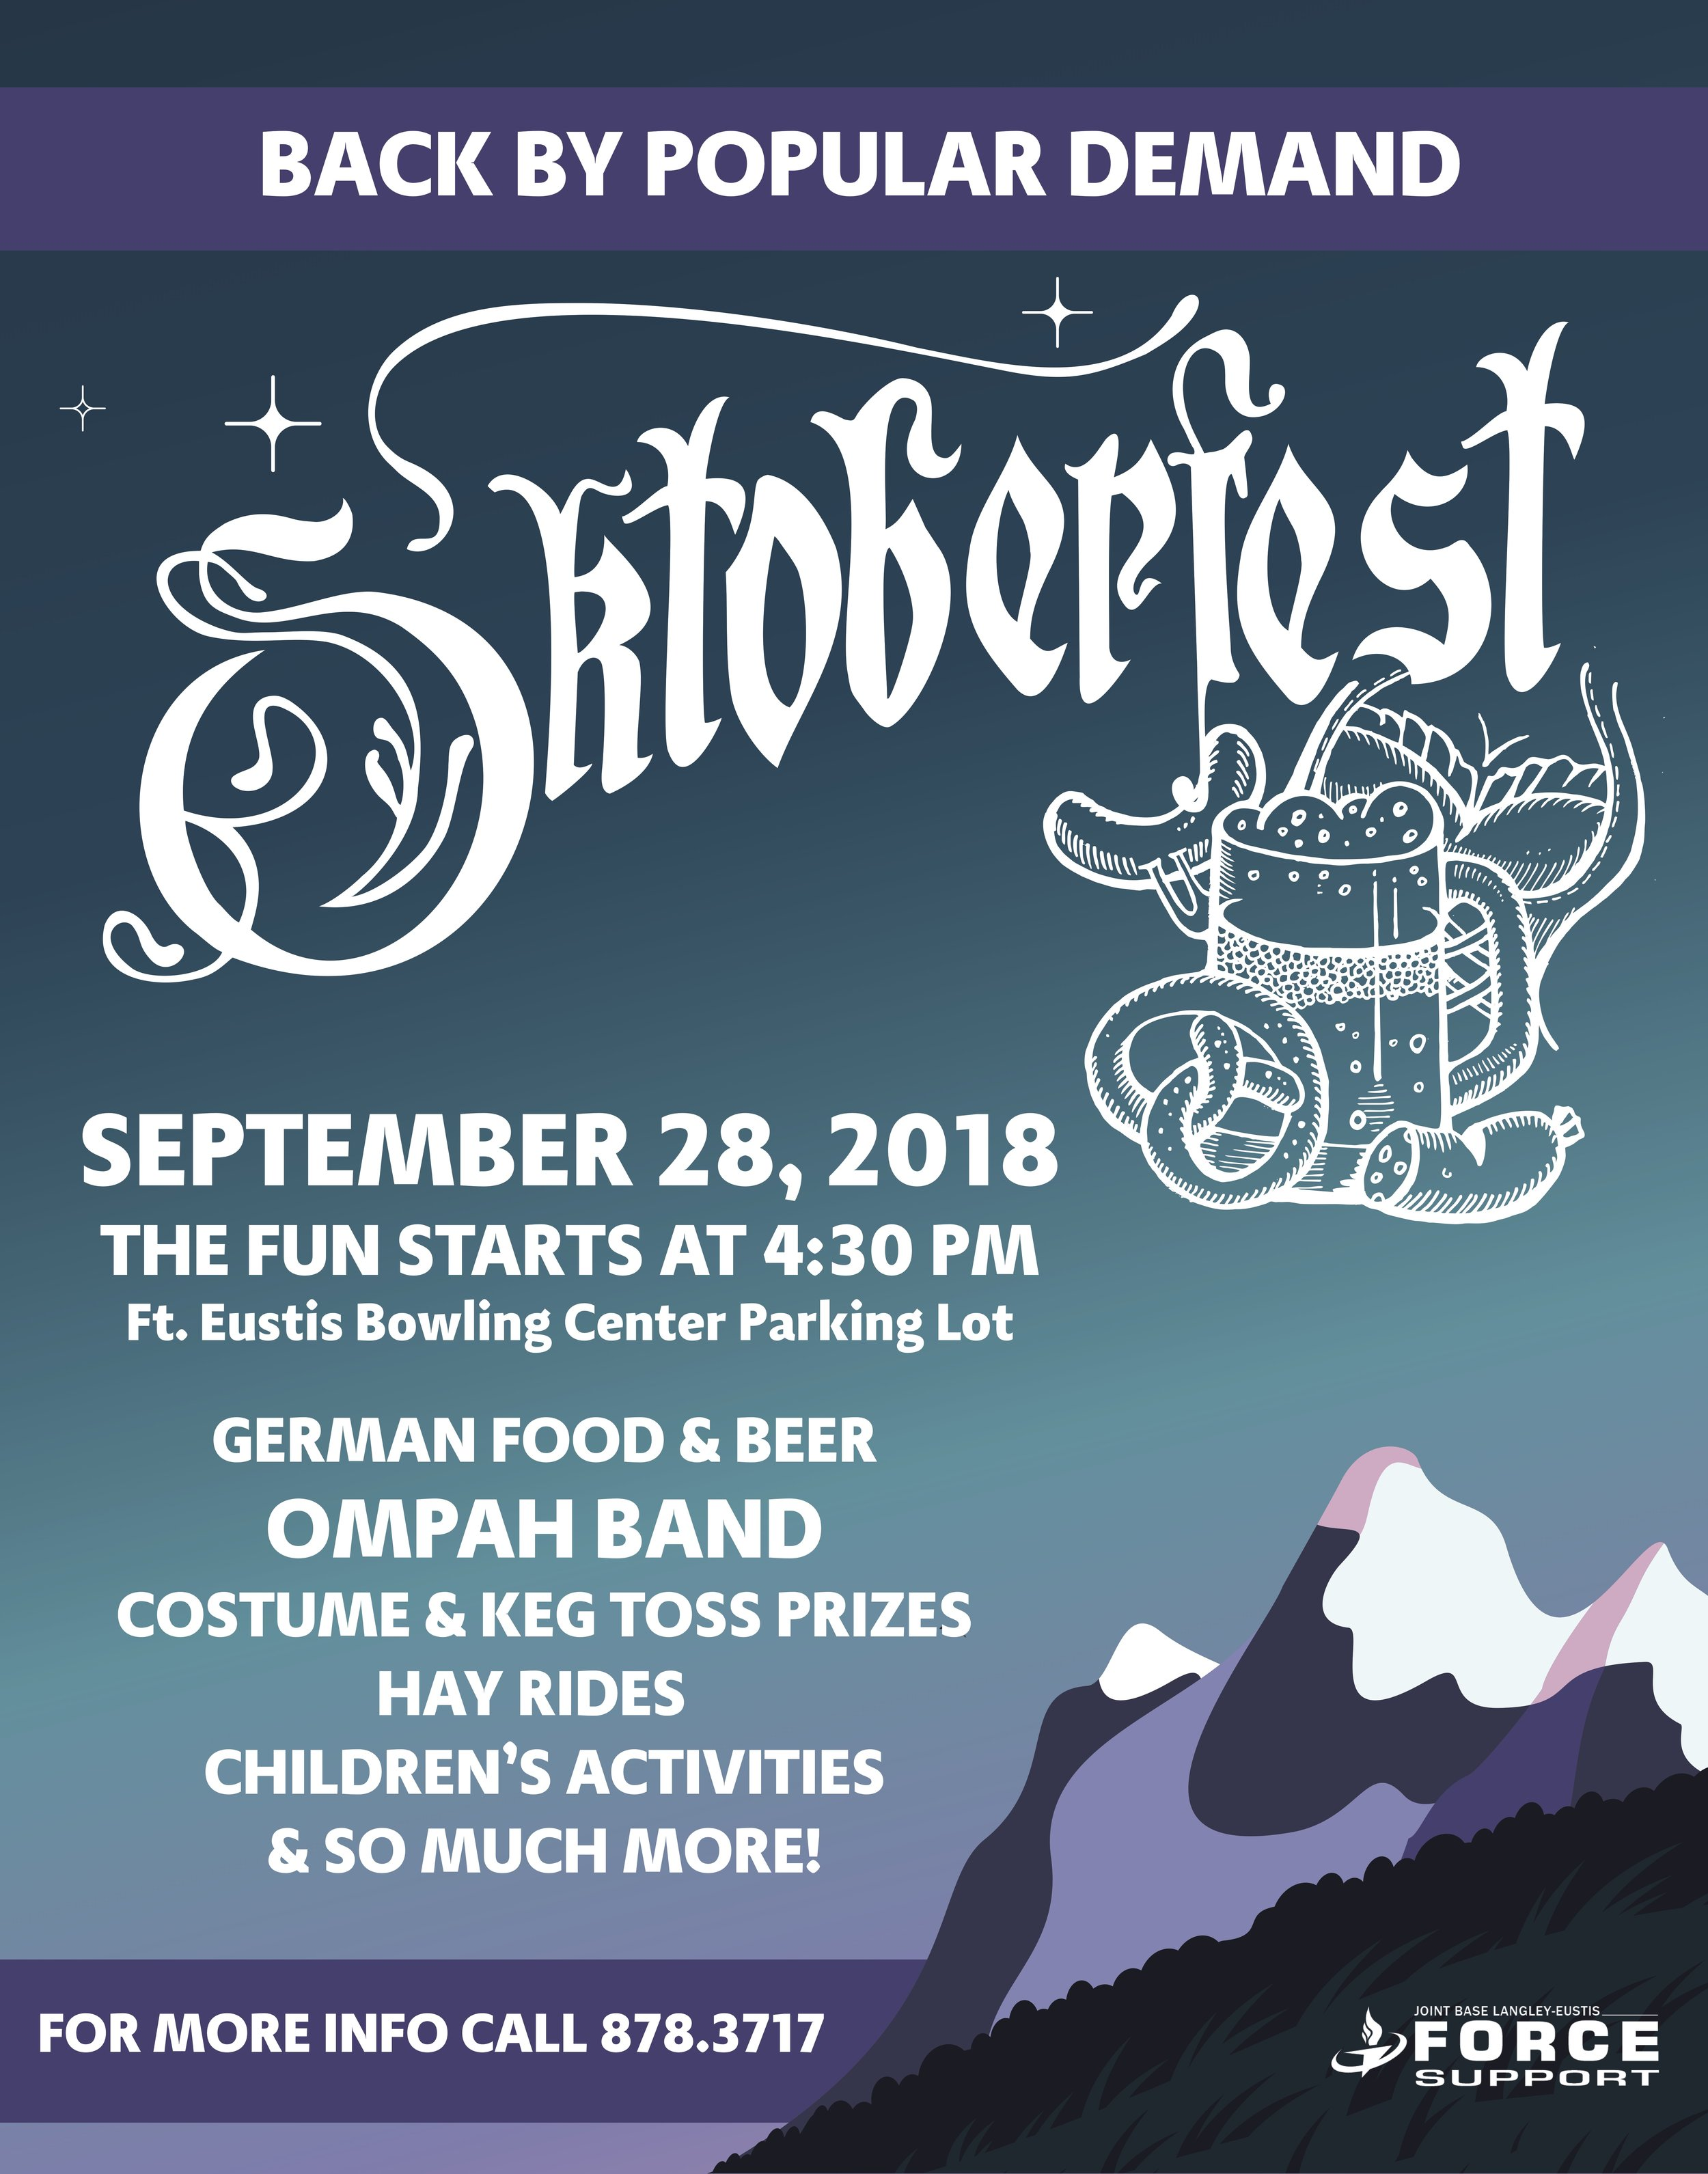 Octoberfest 2018! - Celebrate with traditional German food, beer, music and games! Be sure to bring your kids, there will be activities for them to do.